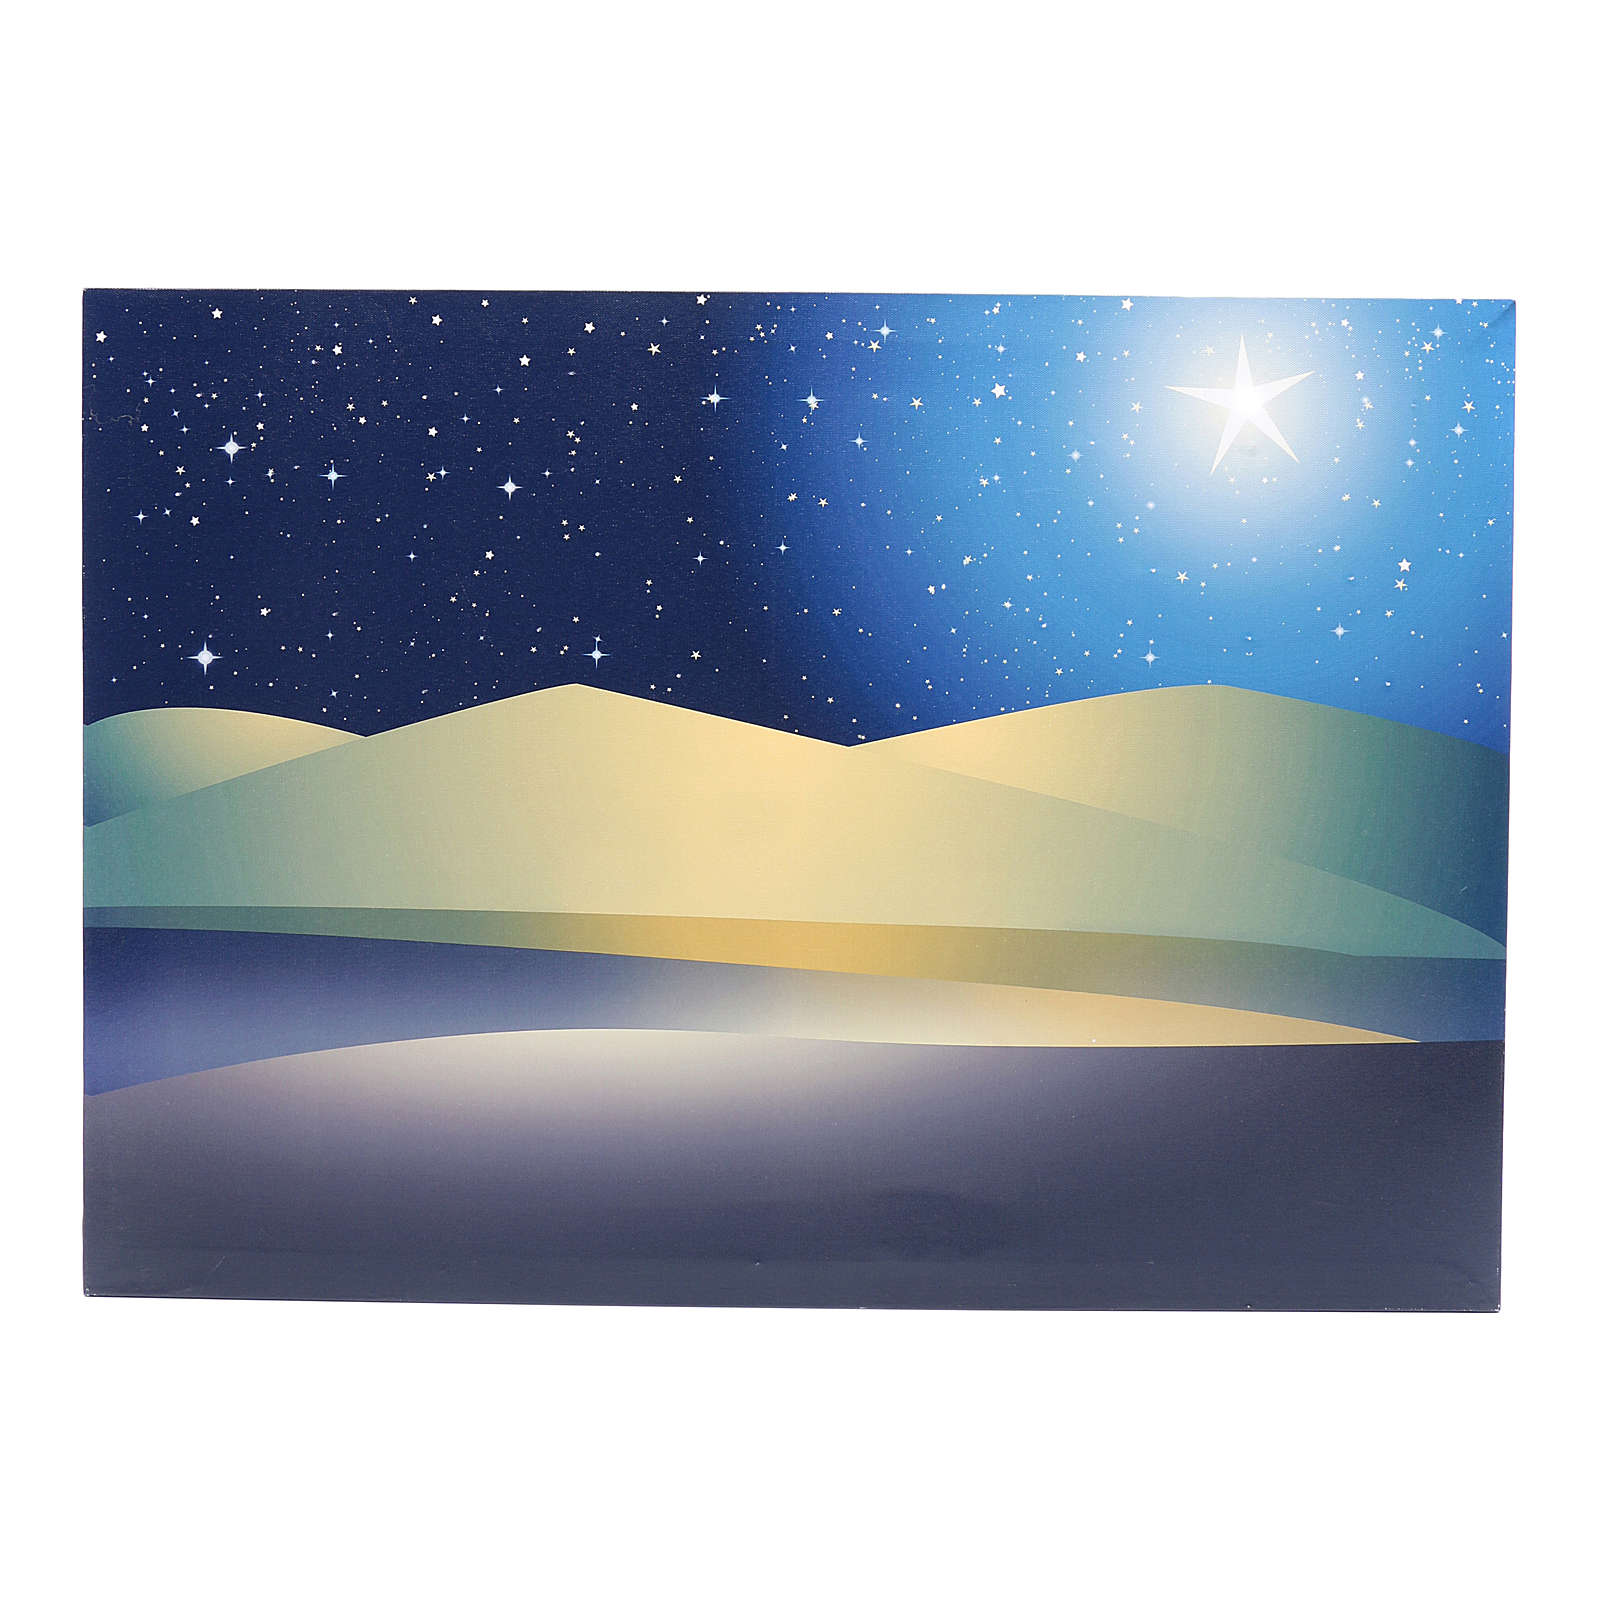 Fondale stelle illuminate led 50x70 cm 4